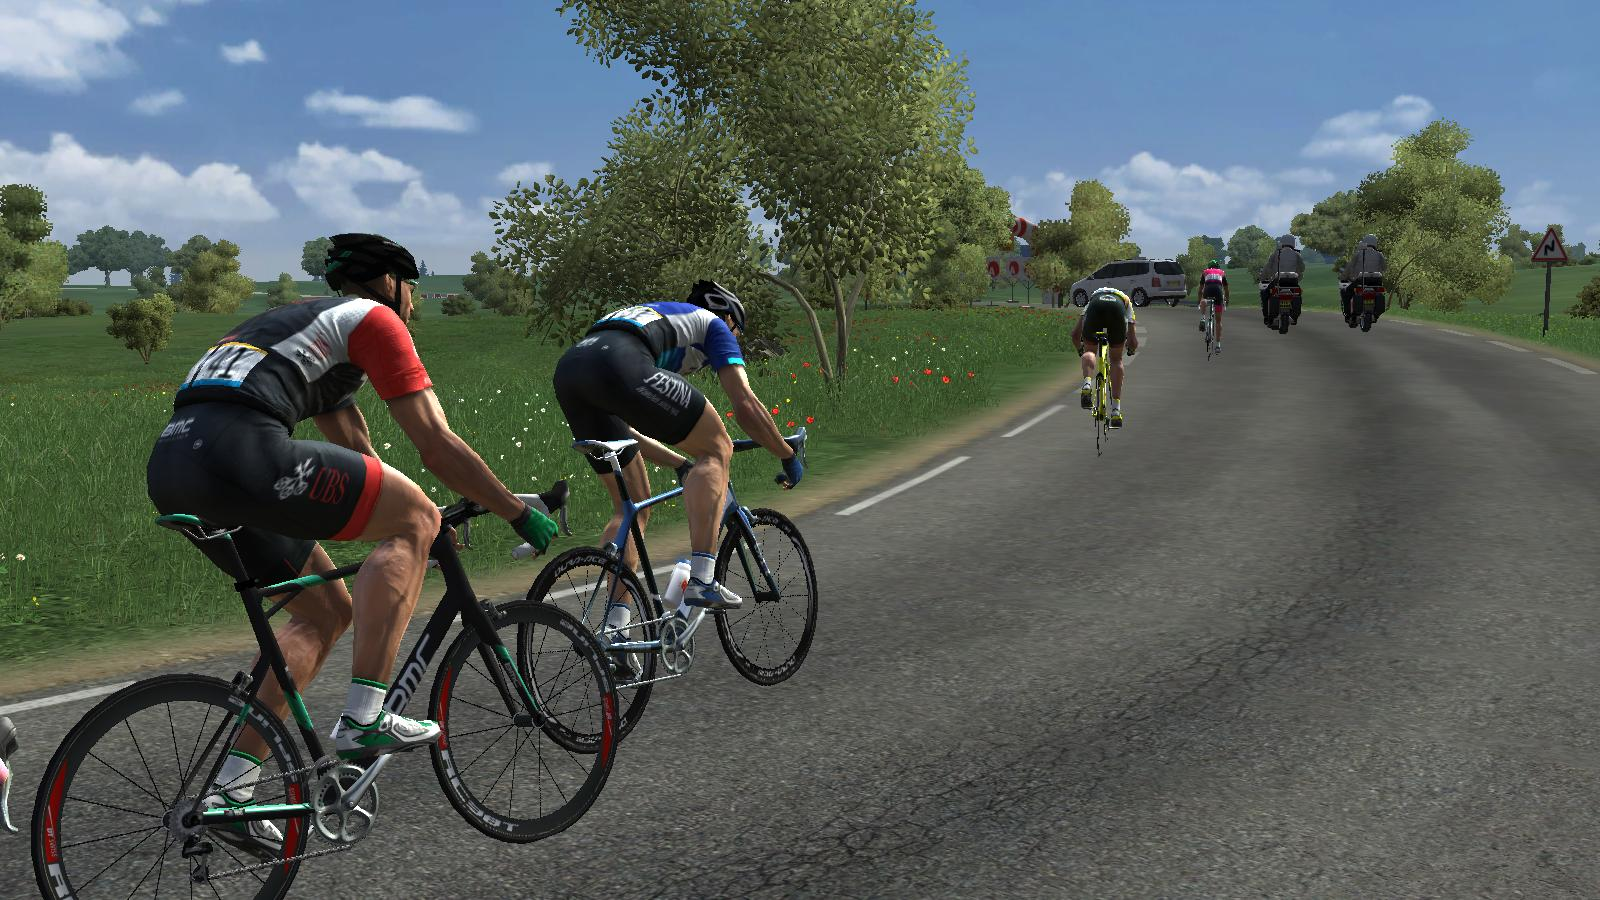 pcmdaily.com/images/mg/2019/Races/PTHC/Rheden/33.jpg